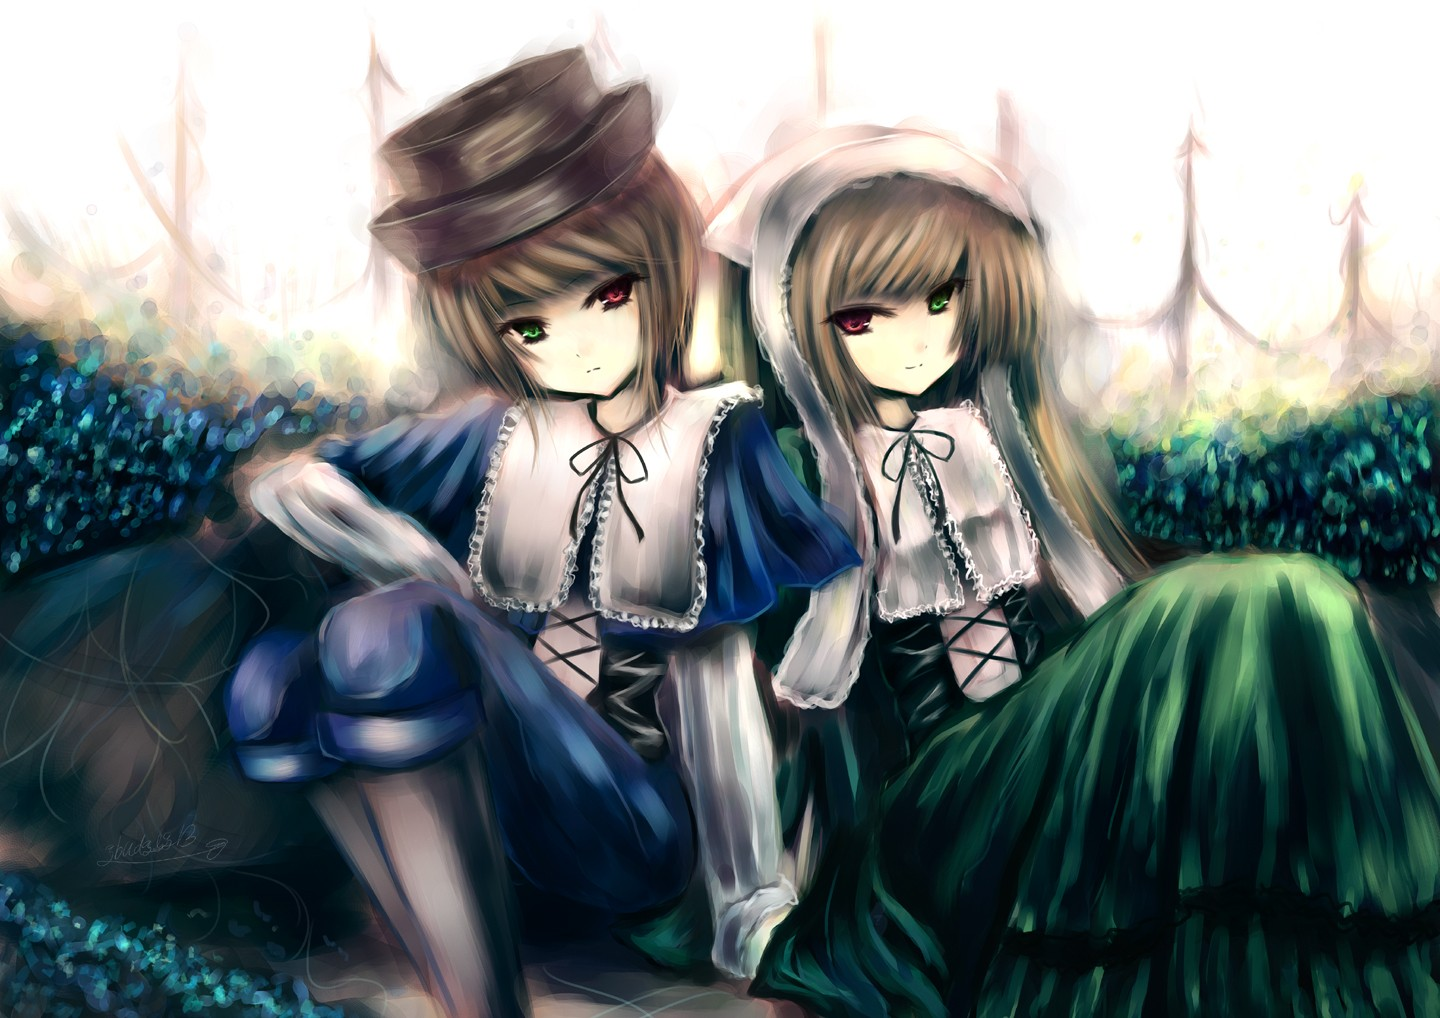 Konachan.com - 50901 bicolored_eyes brown_hair hat rozen_maiden souseiseki suiseiseki twins